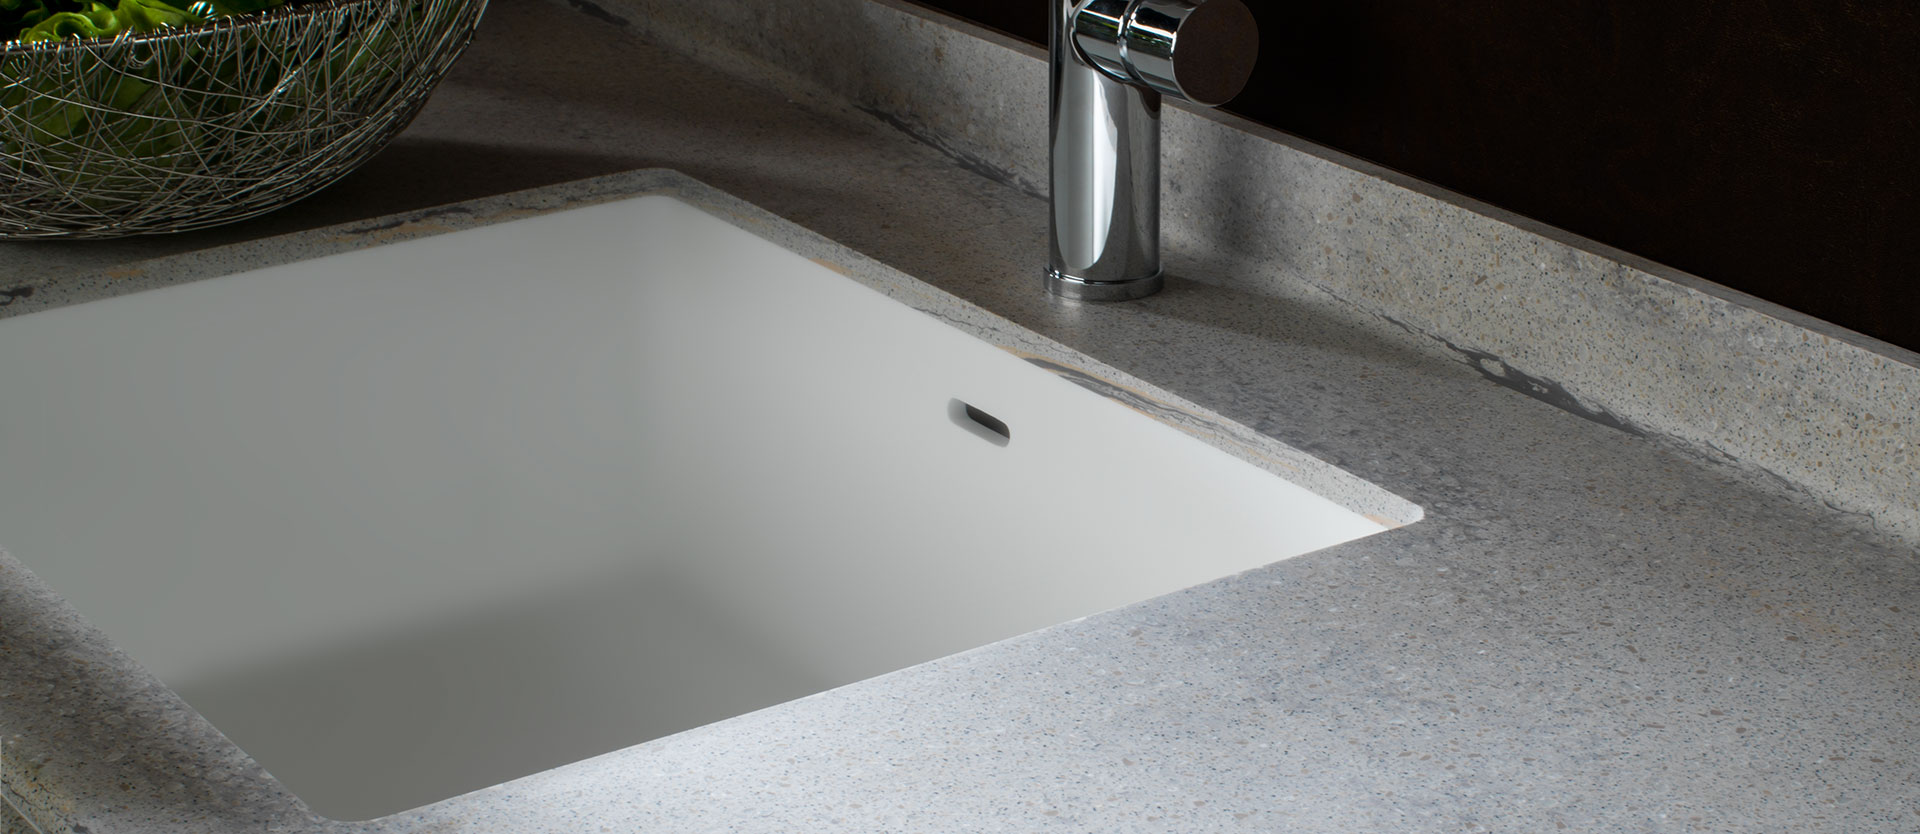 Solid surface kitchen sinks solid surface krion for Solid surface kitchen sink